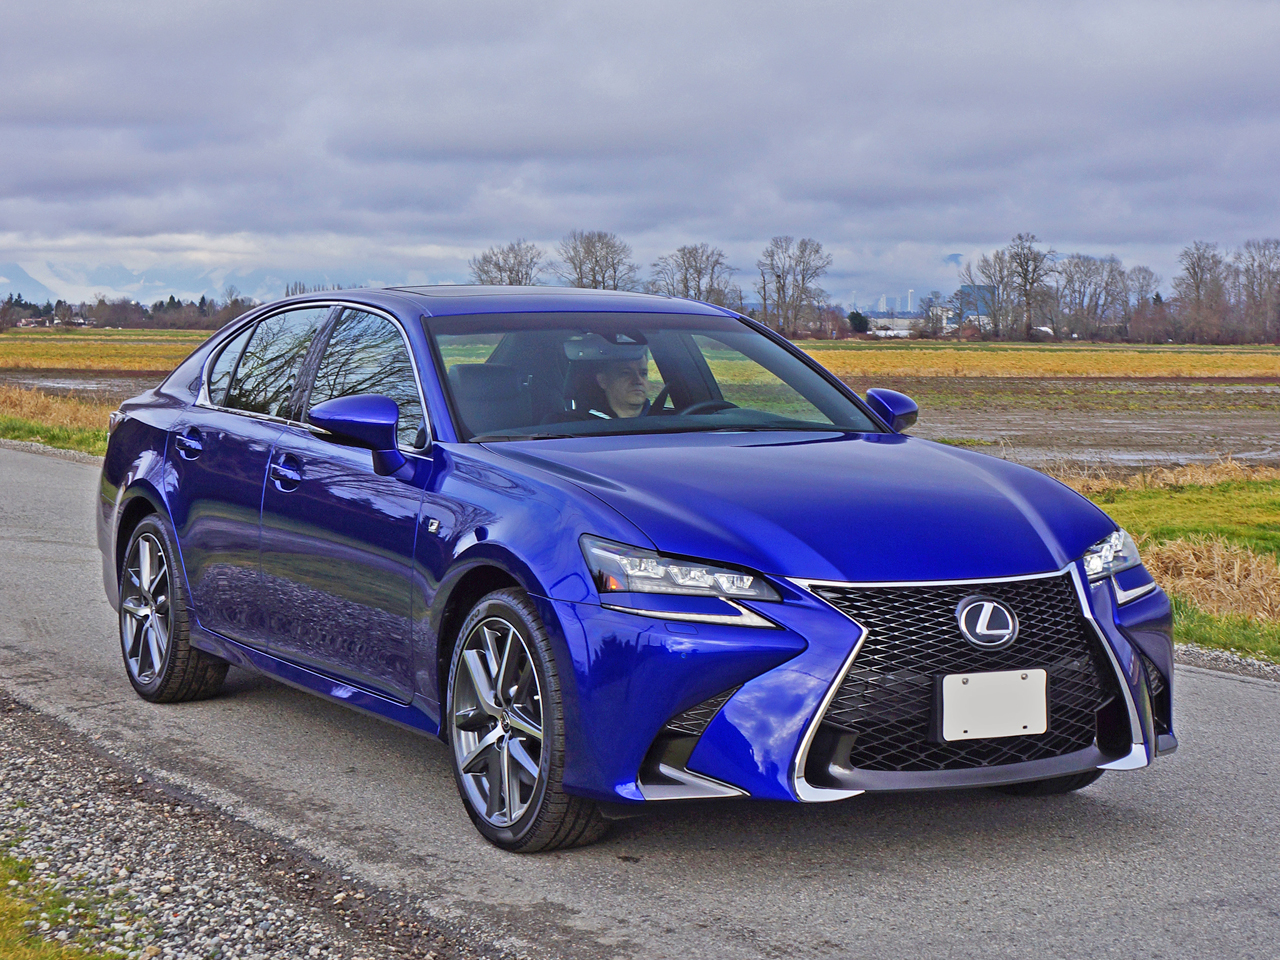 2016 lexus gs 350 awd f sport road test review carcostcanada. Black Bedroom Furniture Sets. Home Design Ideas